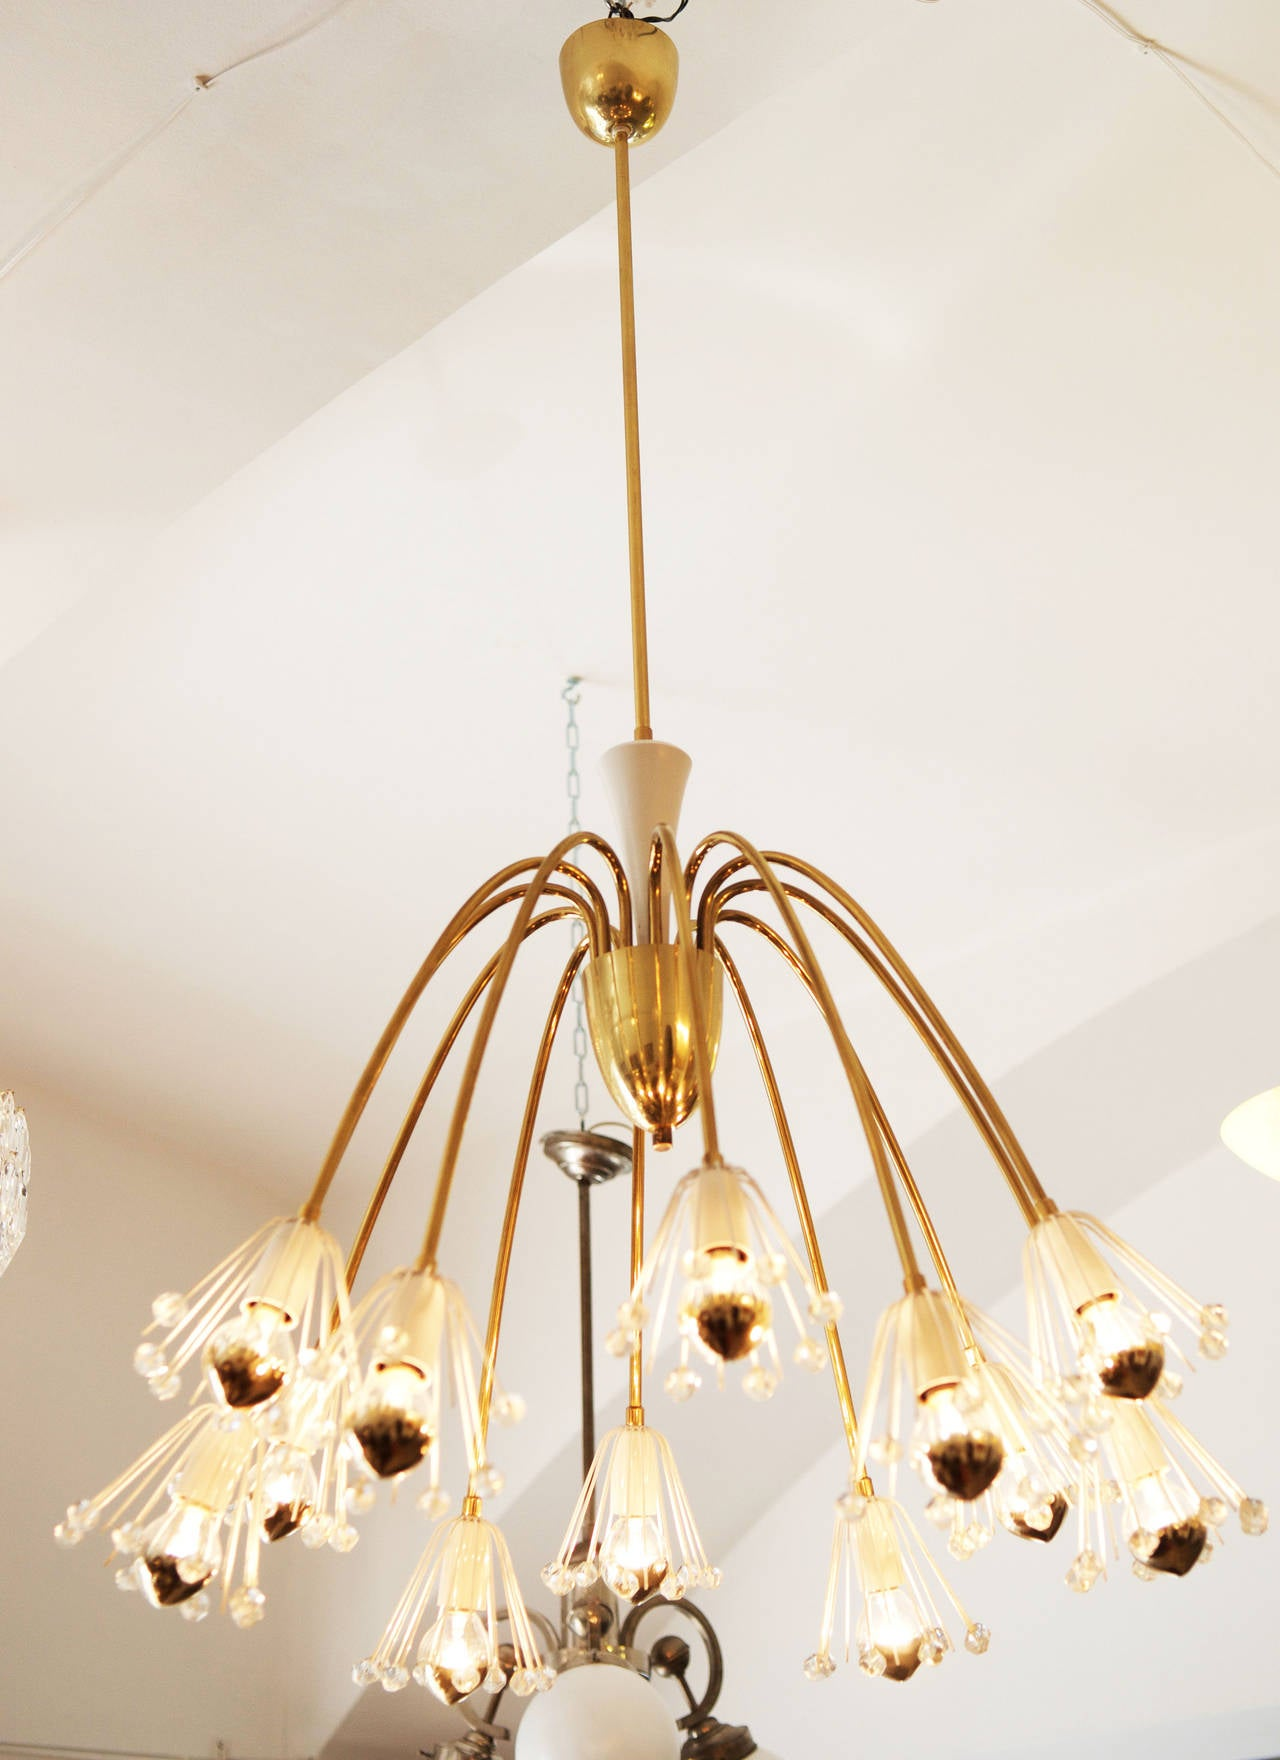 Mid-20th Century Large Brass Chandelier By Emil Stejnar For Rupert Nikoll For Sale